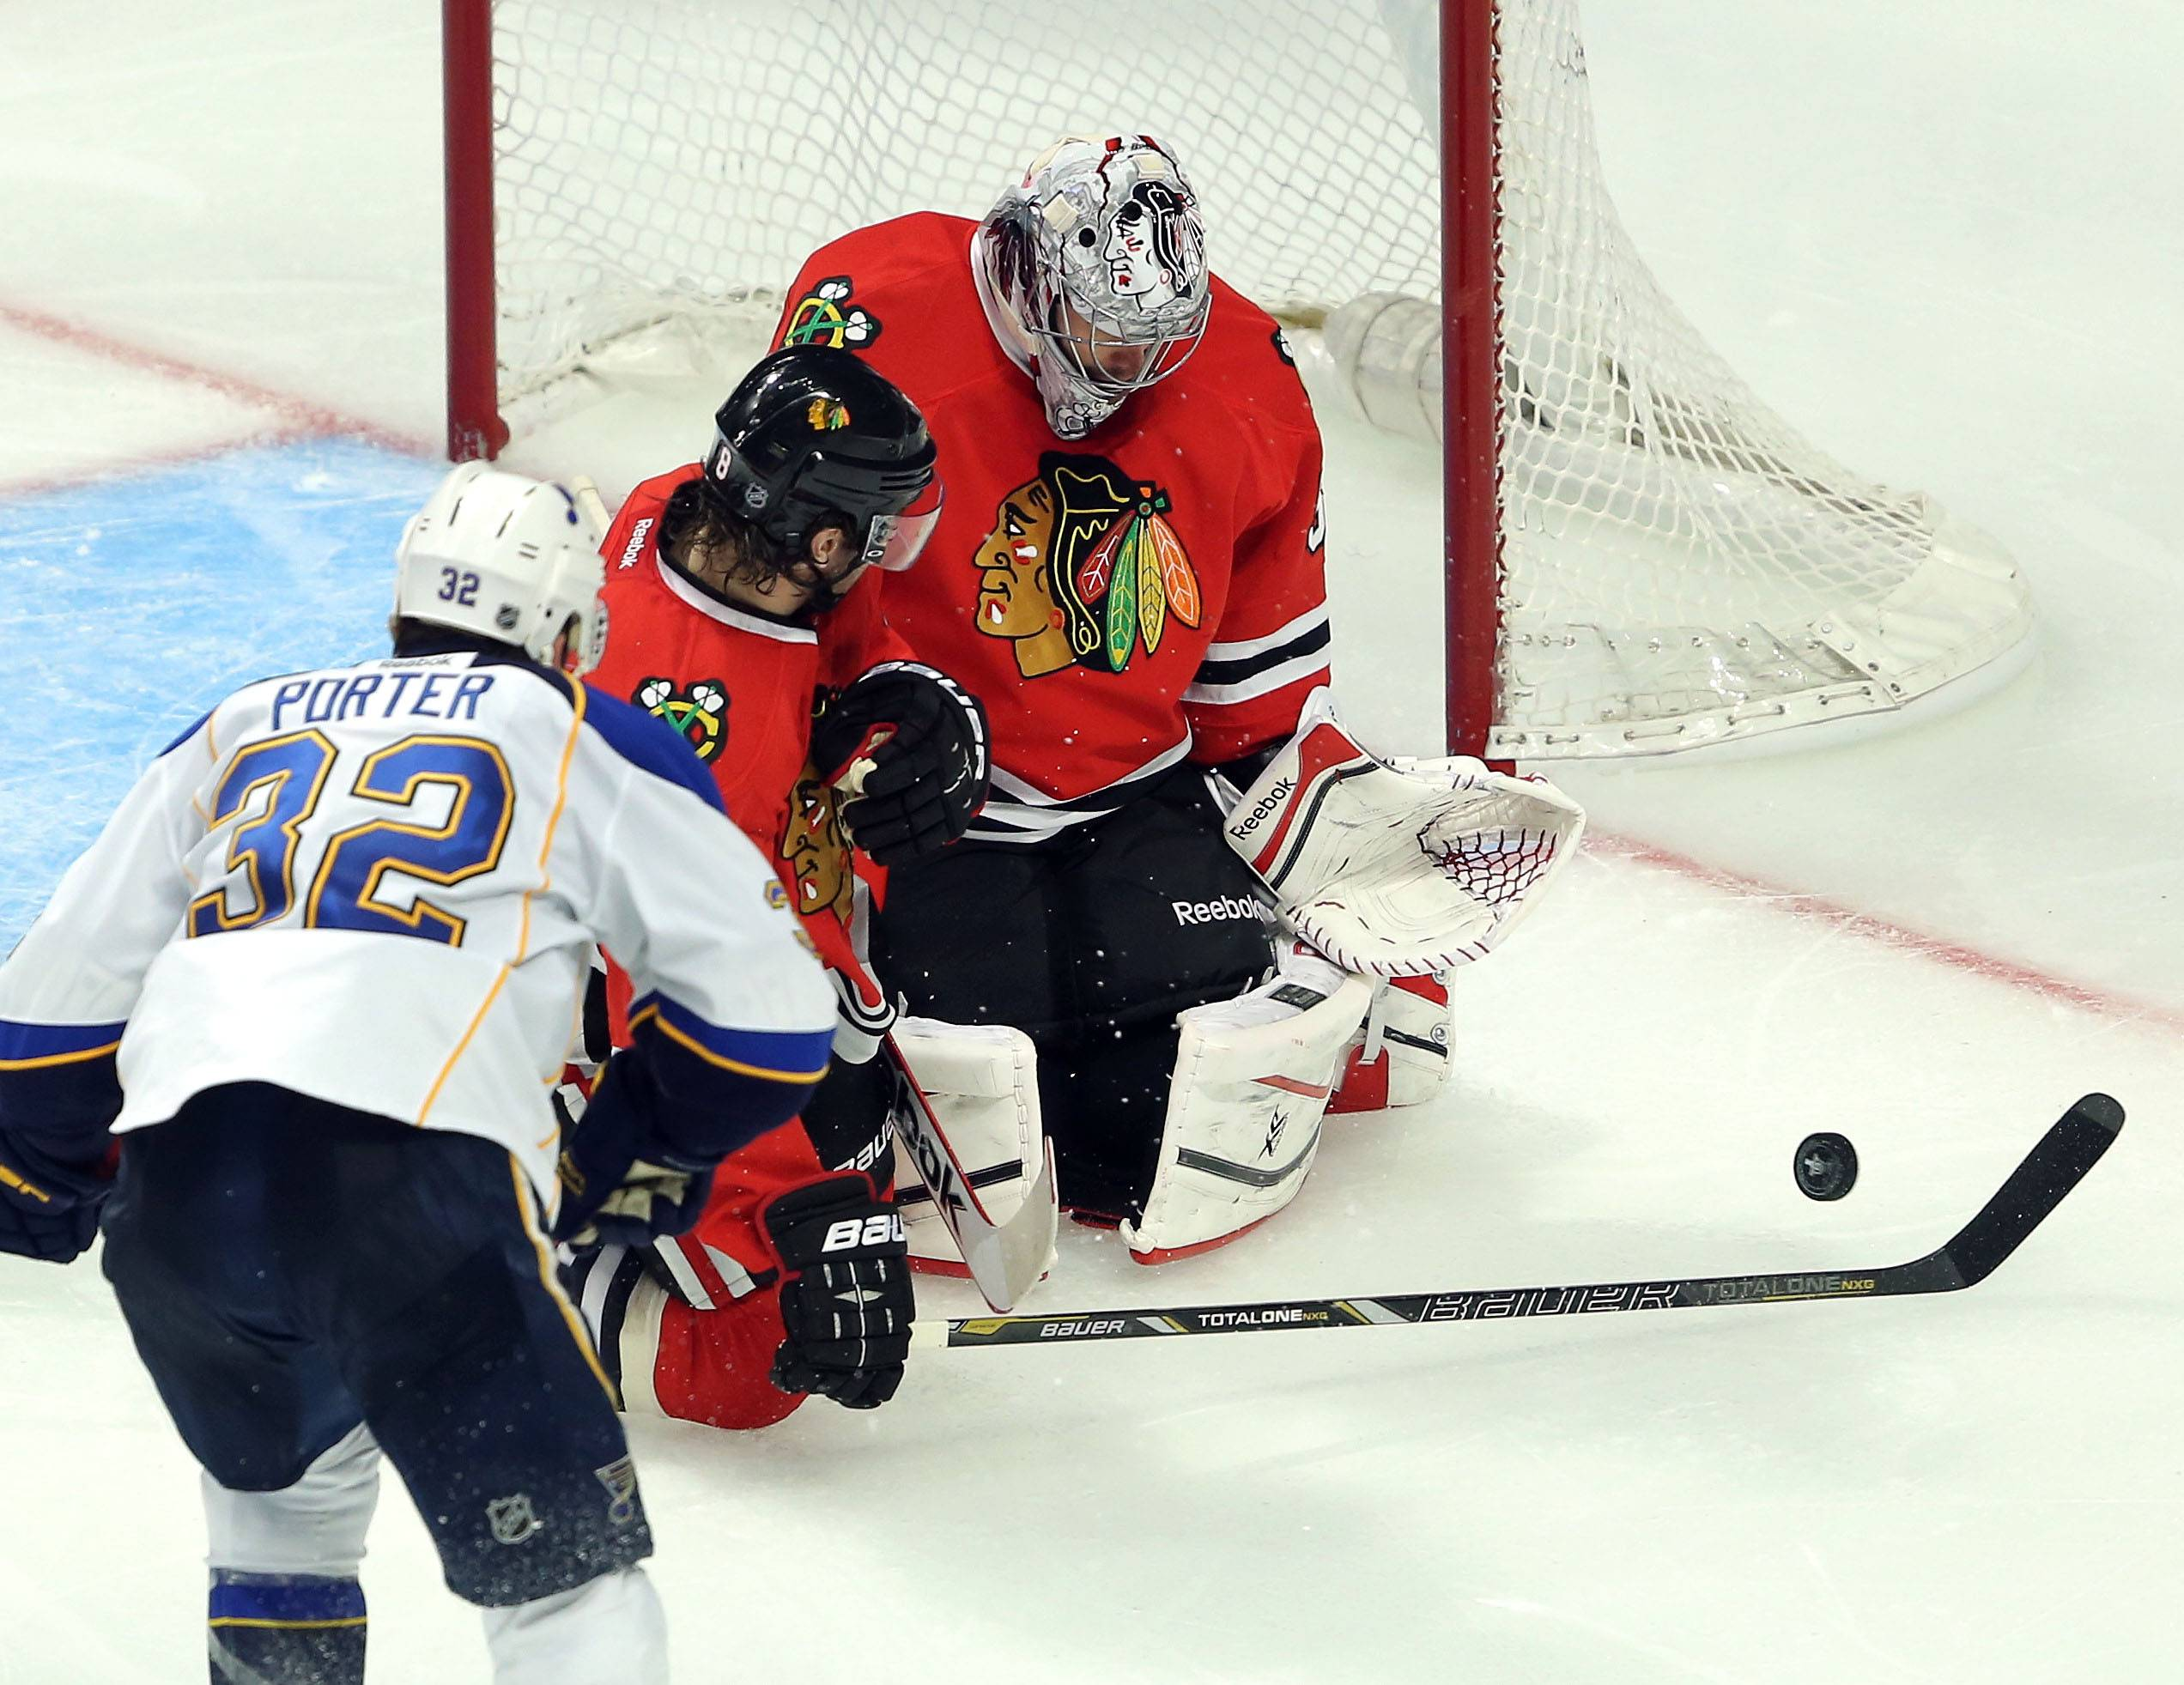 Chicago Blackhawks goalie Corey Crawford makes a save on St. Louis Blues left wing Chris Porter's shot on goal.